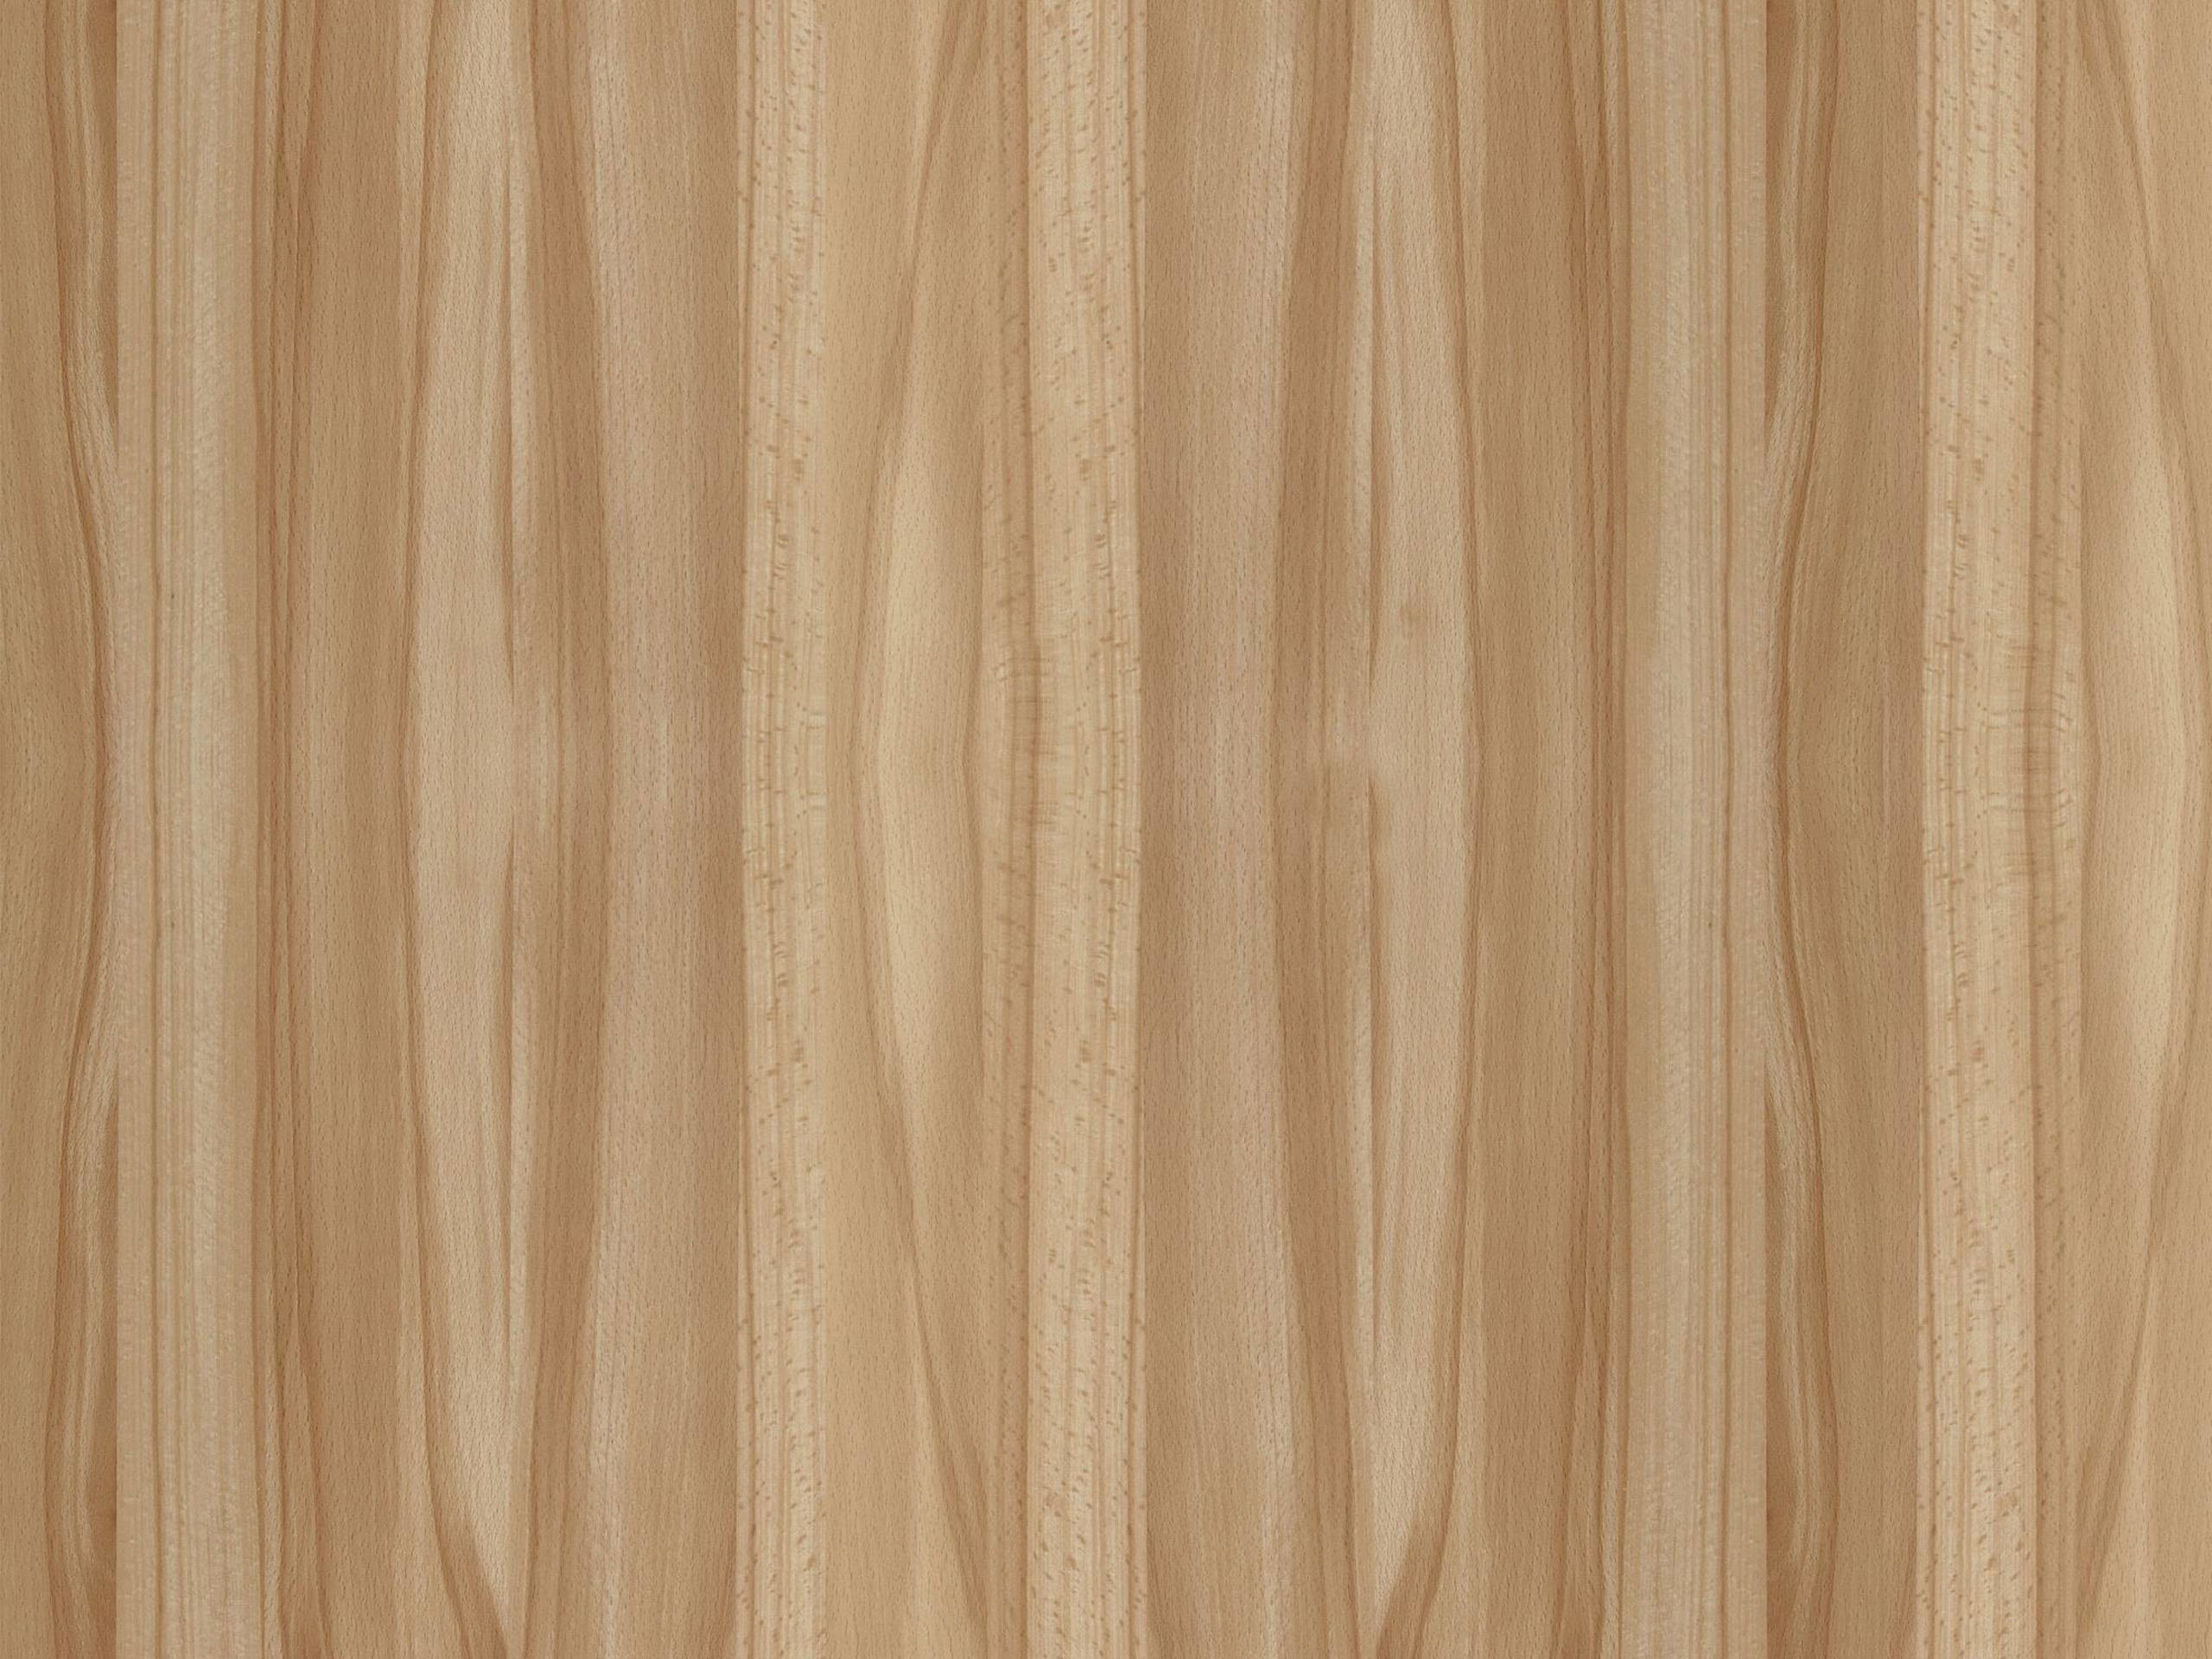 2560x1920 Wallpapers For Light Brown Wood Wallpaper